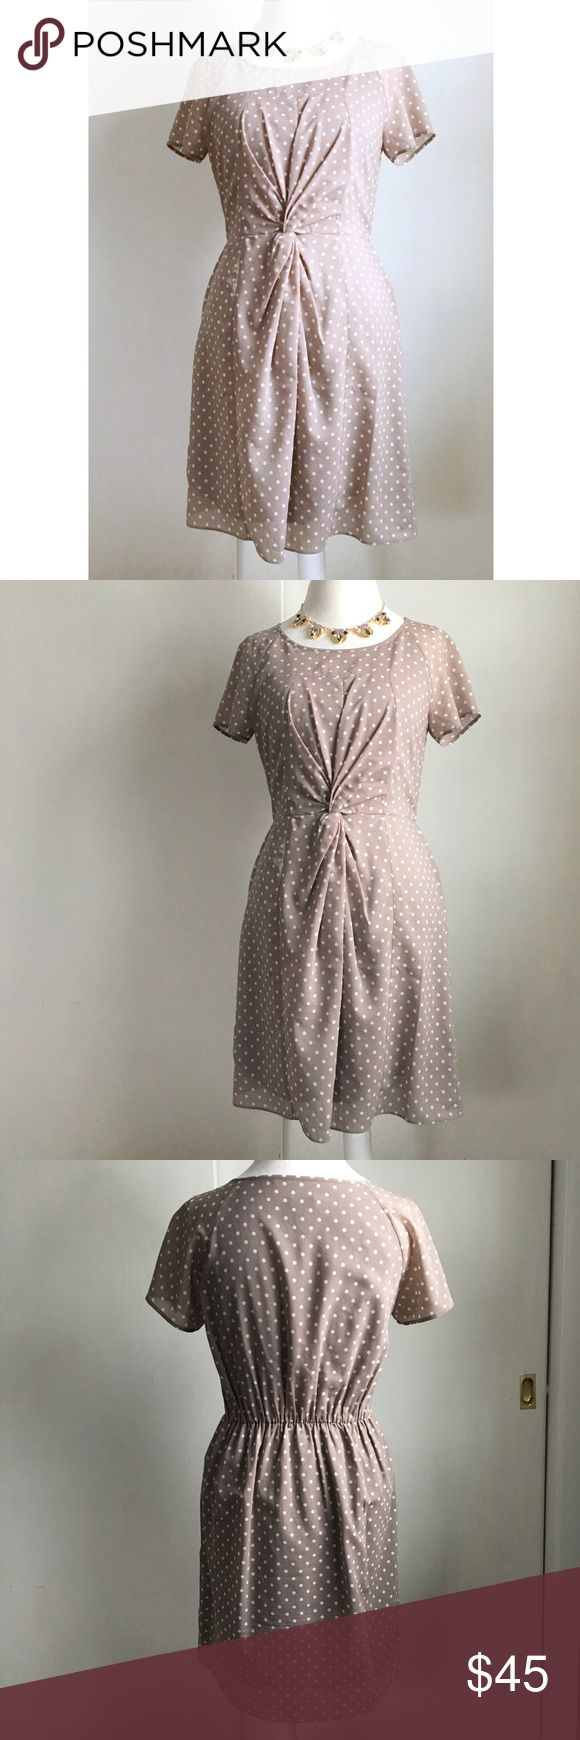 j crew polka dot dress J Crew Factory dress with knitted front design. Tan/taupe with white polka dots. Crew neck, shirt sleeves. Pull on style with elastic waist. Size 4. Excellent condition! / j crew, jcrew, factory, dress, tan, taupe, beige, brown, white, ivory, off white, polka dot, print, pattern / J. Crew Factory Dresses